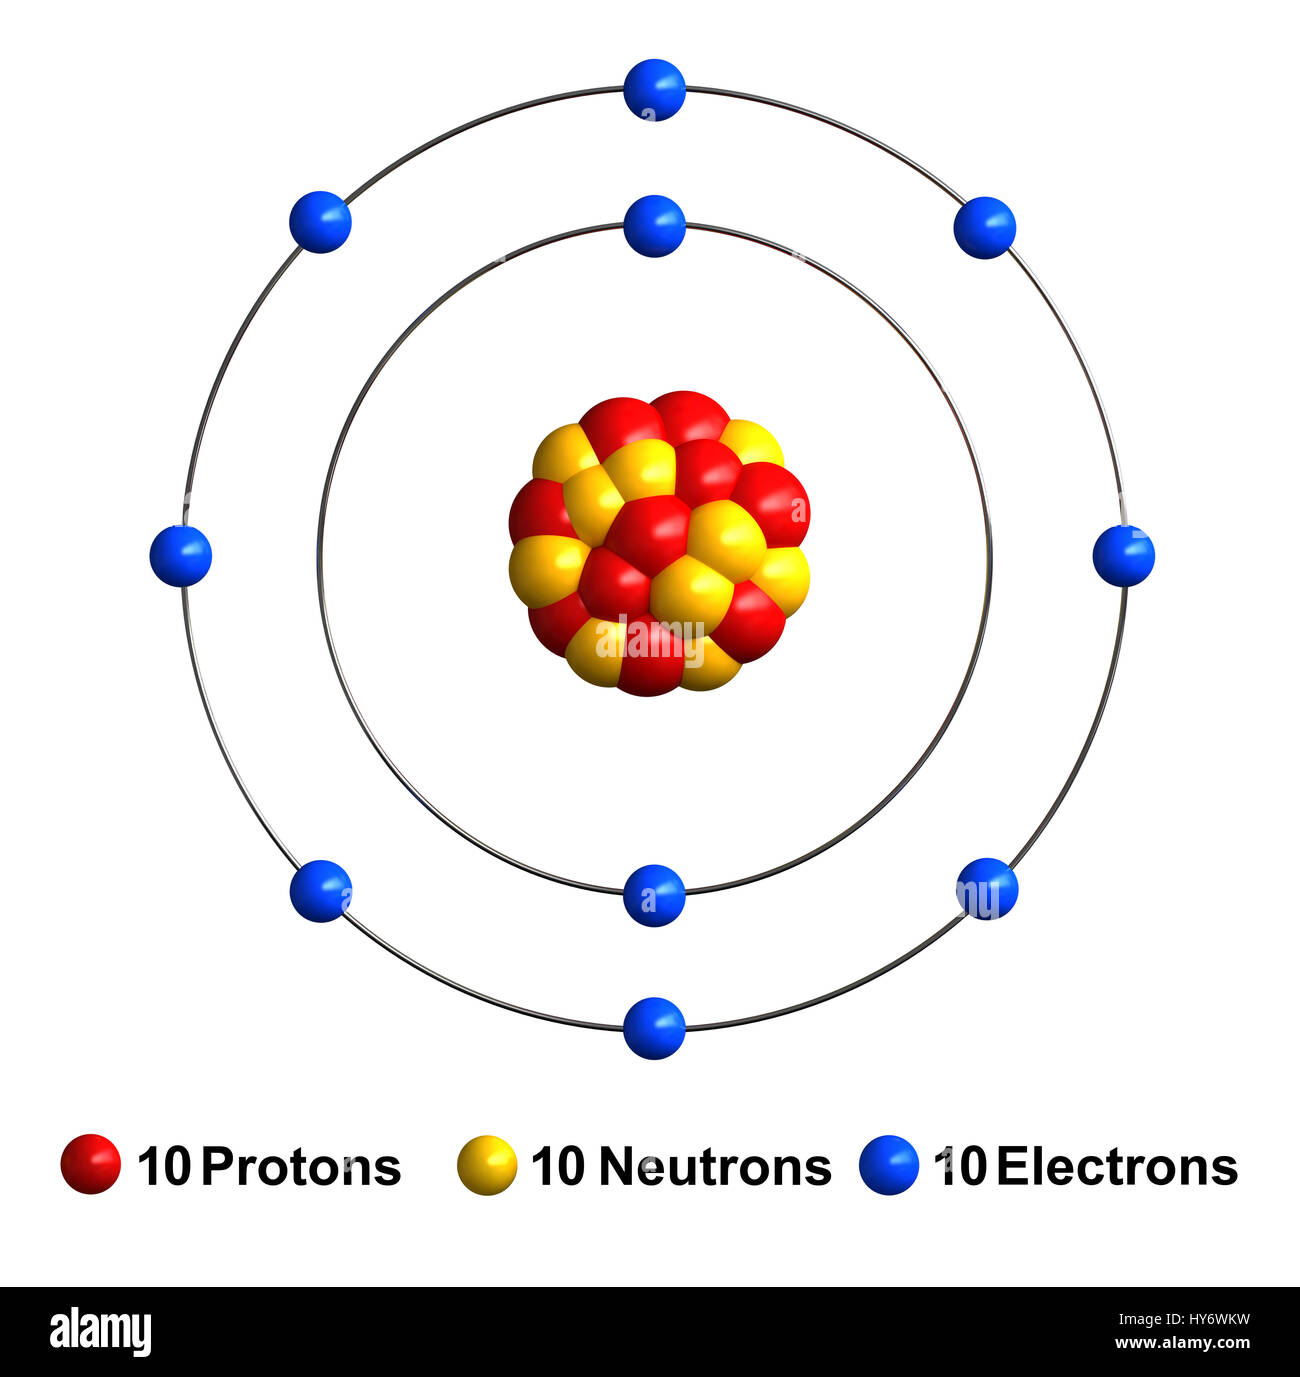 hight resolution of 3d render of atom structure of neon isolated over white background protons are represented as red spheres neutron as yellow spheres electrons as blu